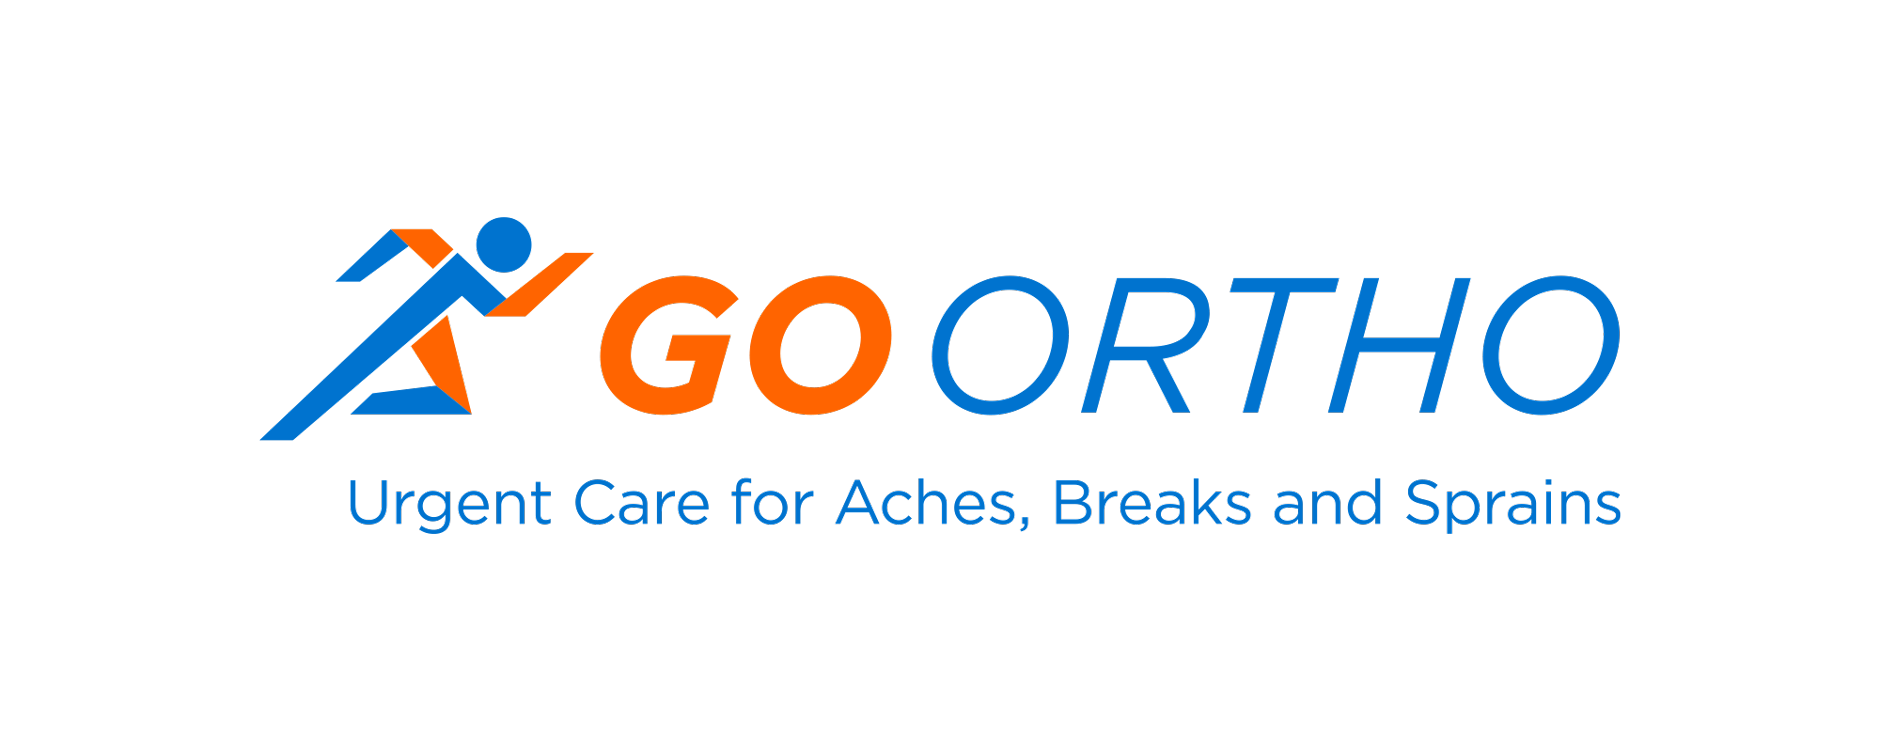 GO Ortho Full Logo Horizontal | Health Care Branding